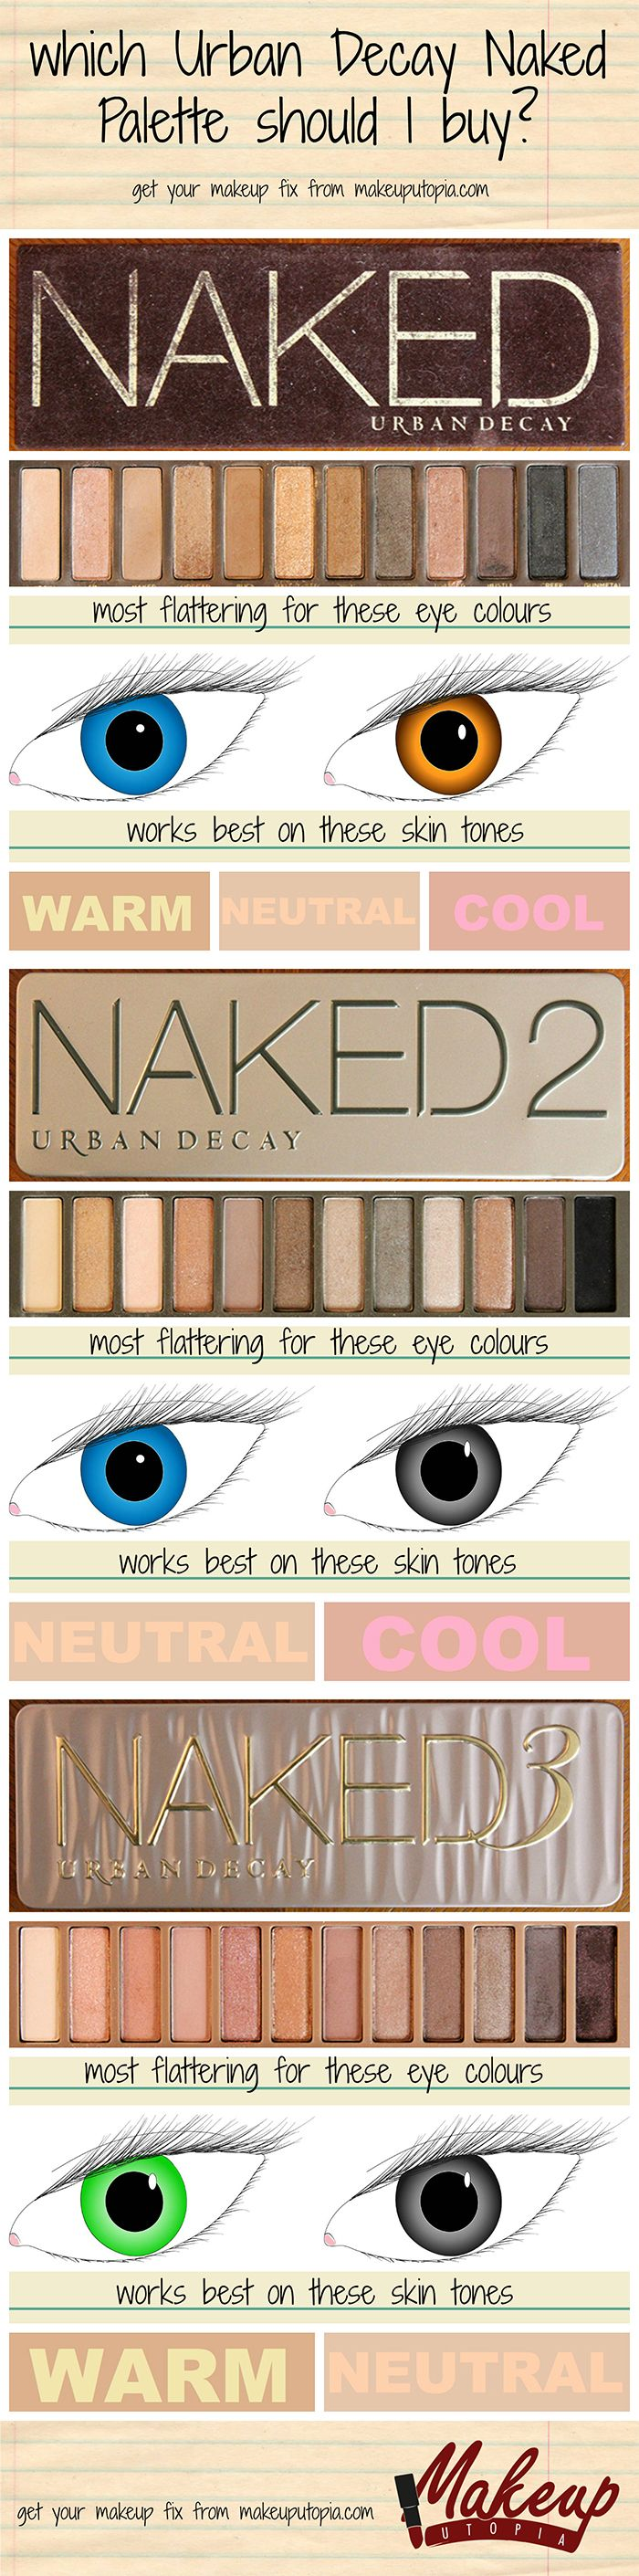 Makeup Utopia | Which Naked Palette should I buy | http://makeuputopia.com #urbandecay